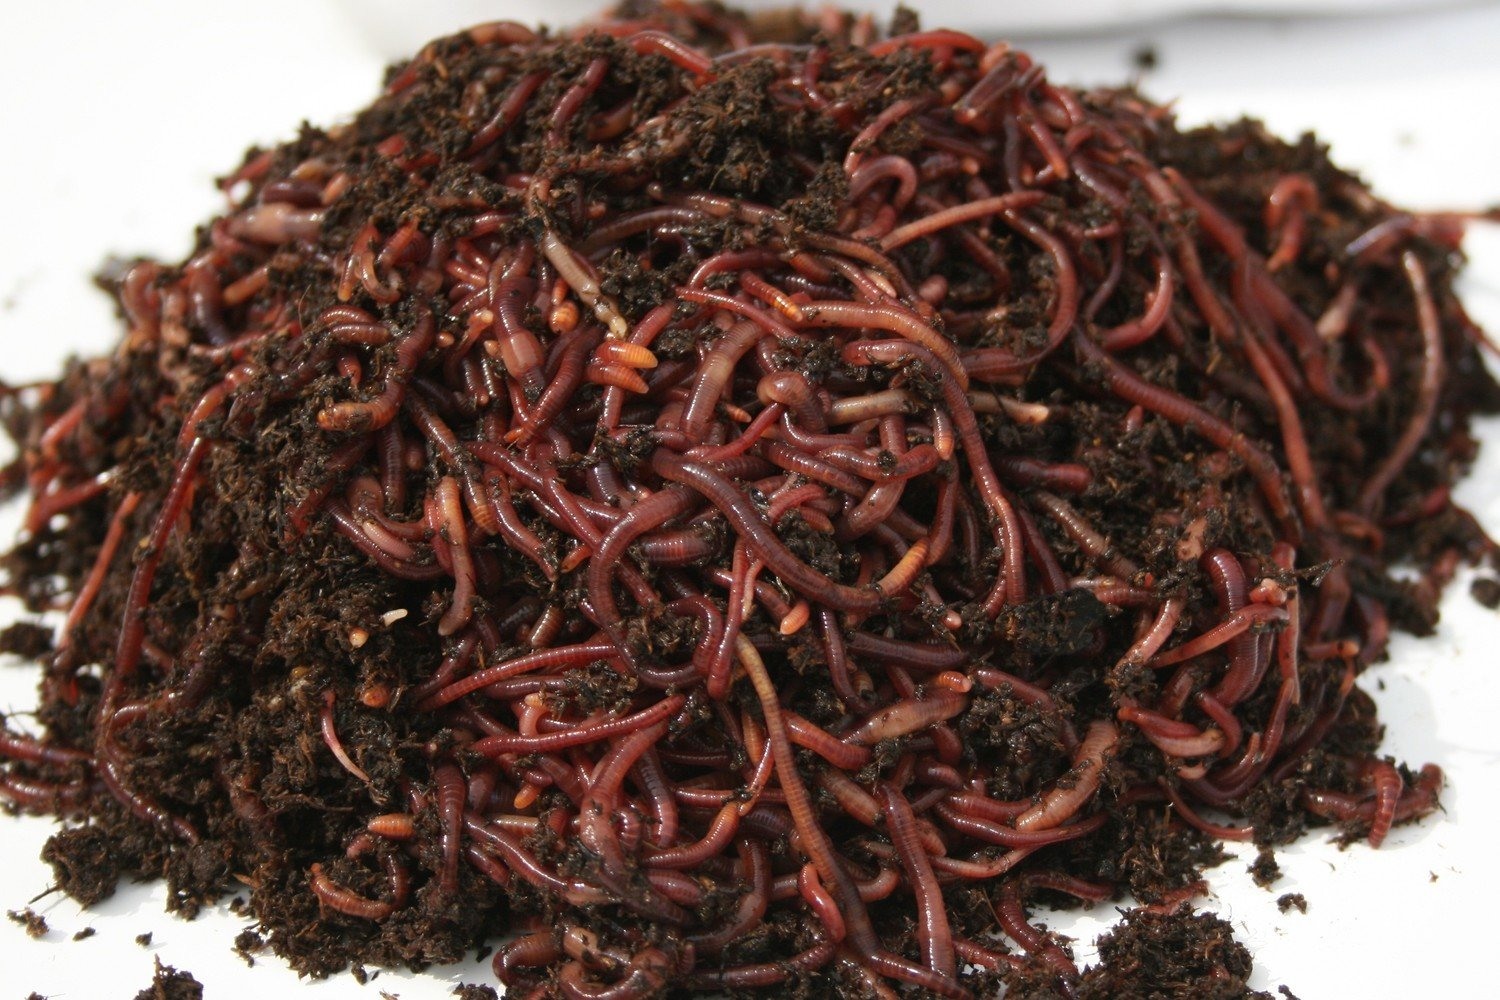 Red Worms 1 lb